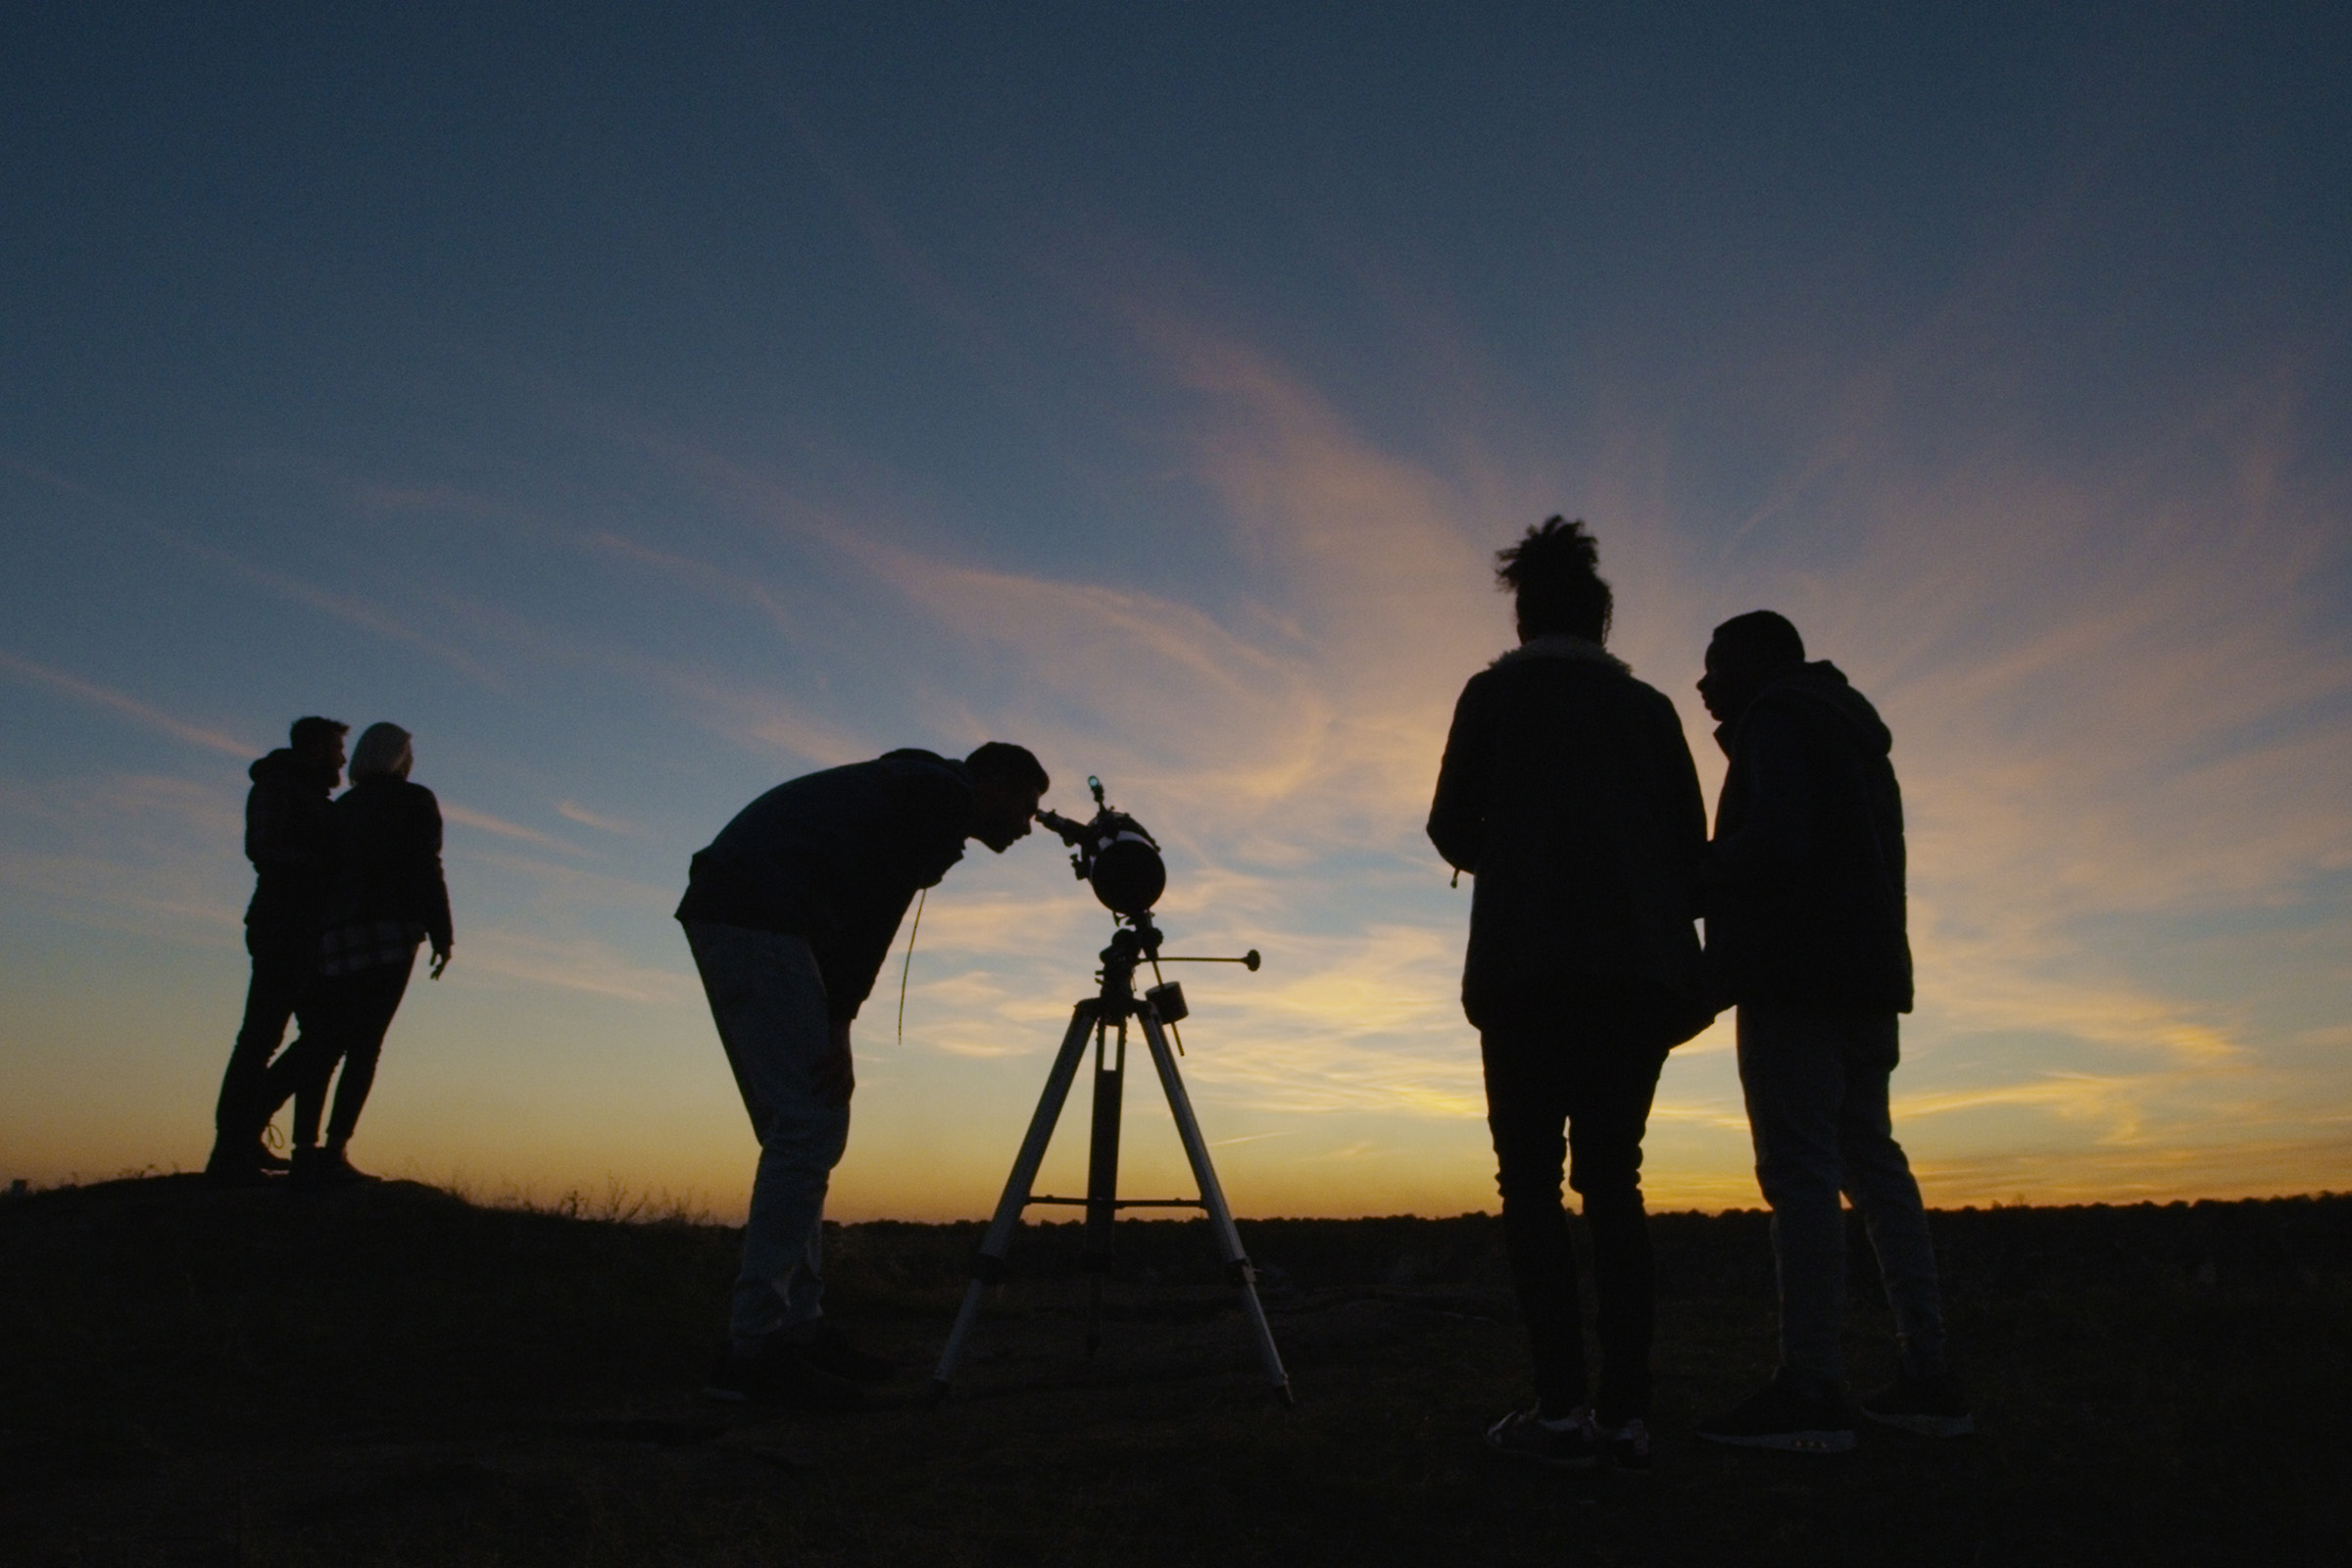 Group of people taking pictures of night sky